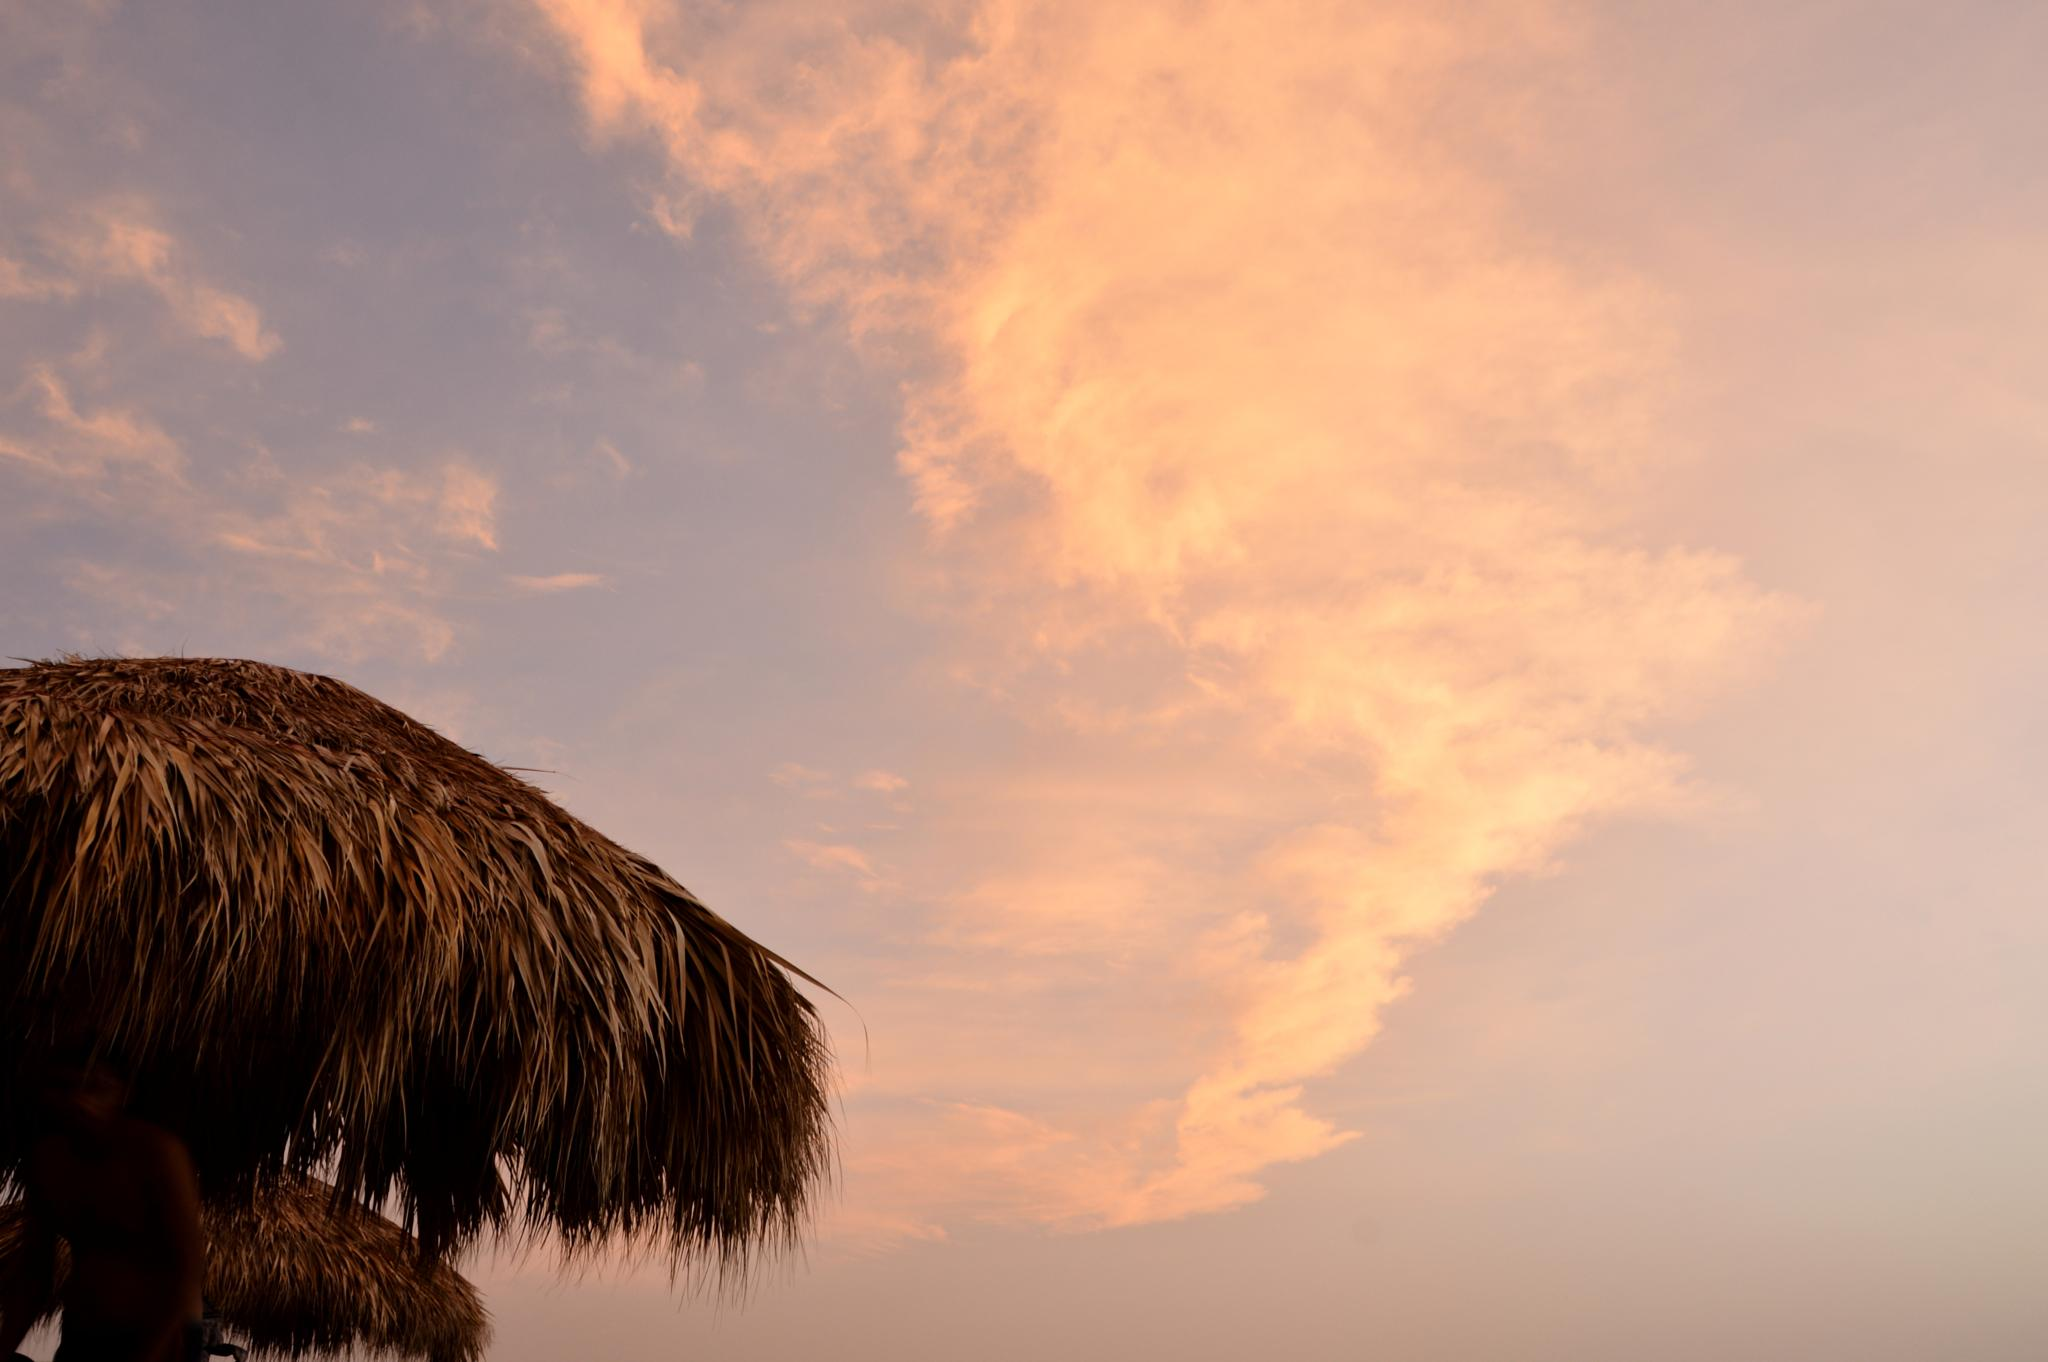 Palm roof and cloud by Ives Martinez